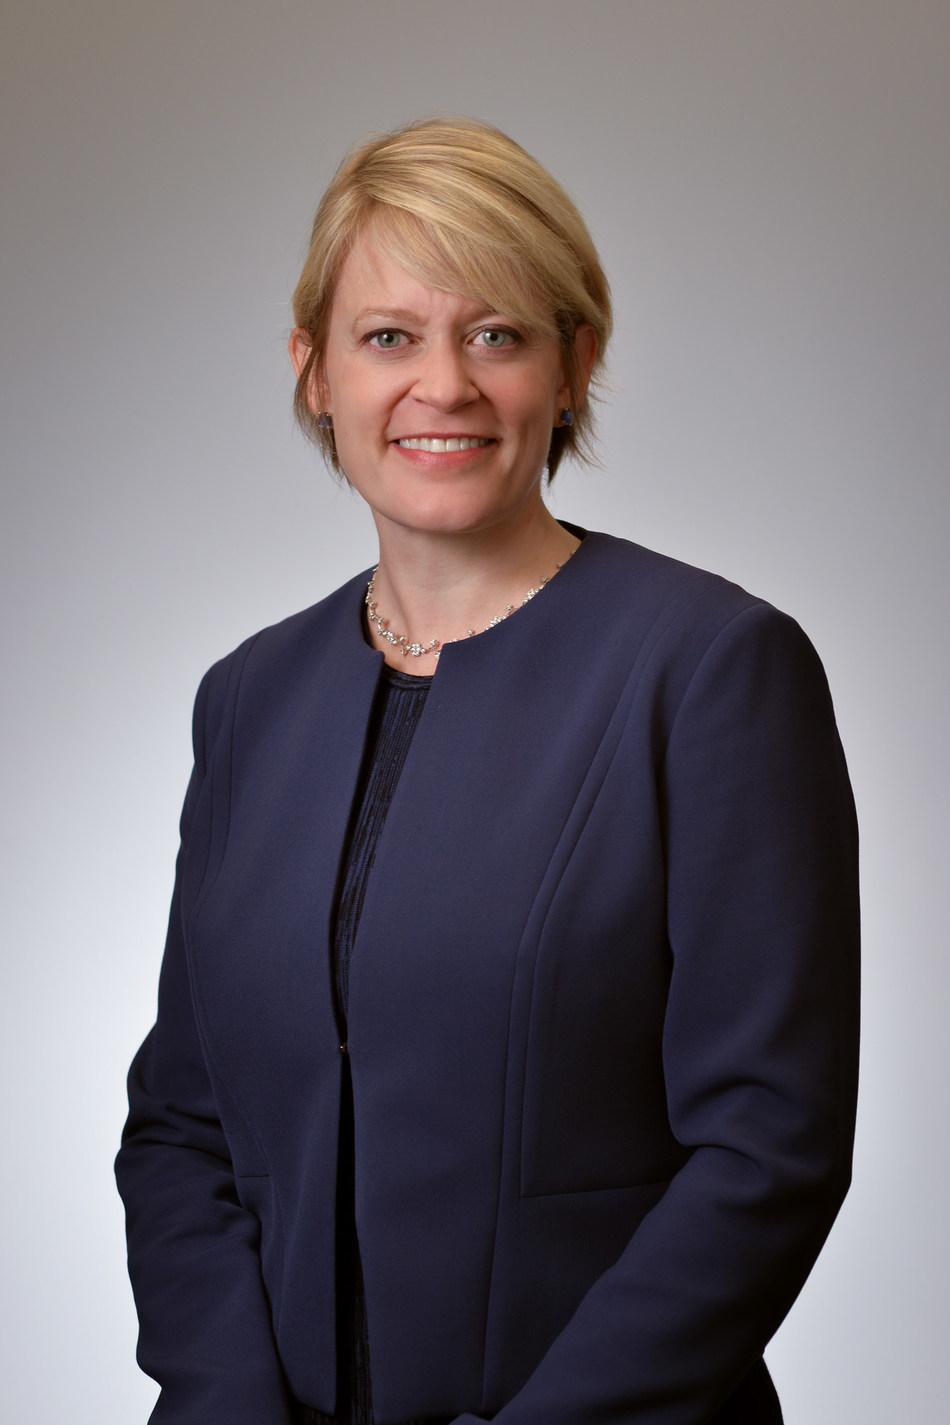 Cindy Donohoe, Executive Vice President/Chief Marketing Officer, Highmark Health